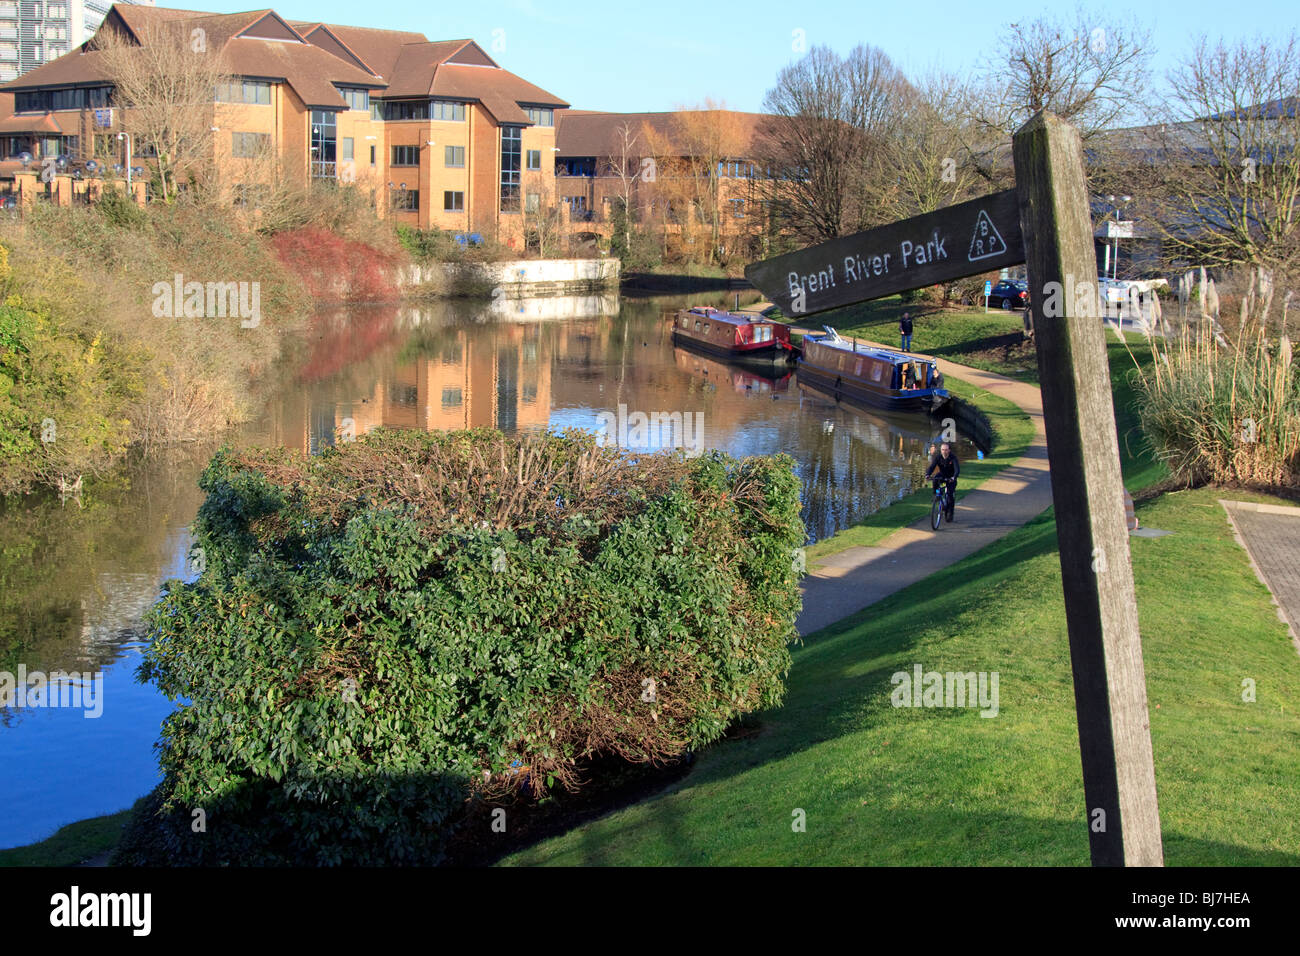 Brent River Park on the Grand Union Canal, Brentford, London - Stock Image